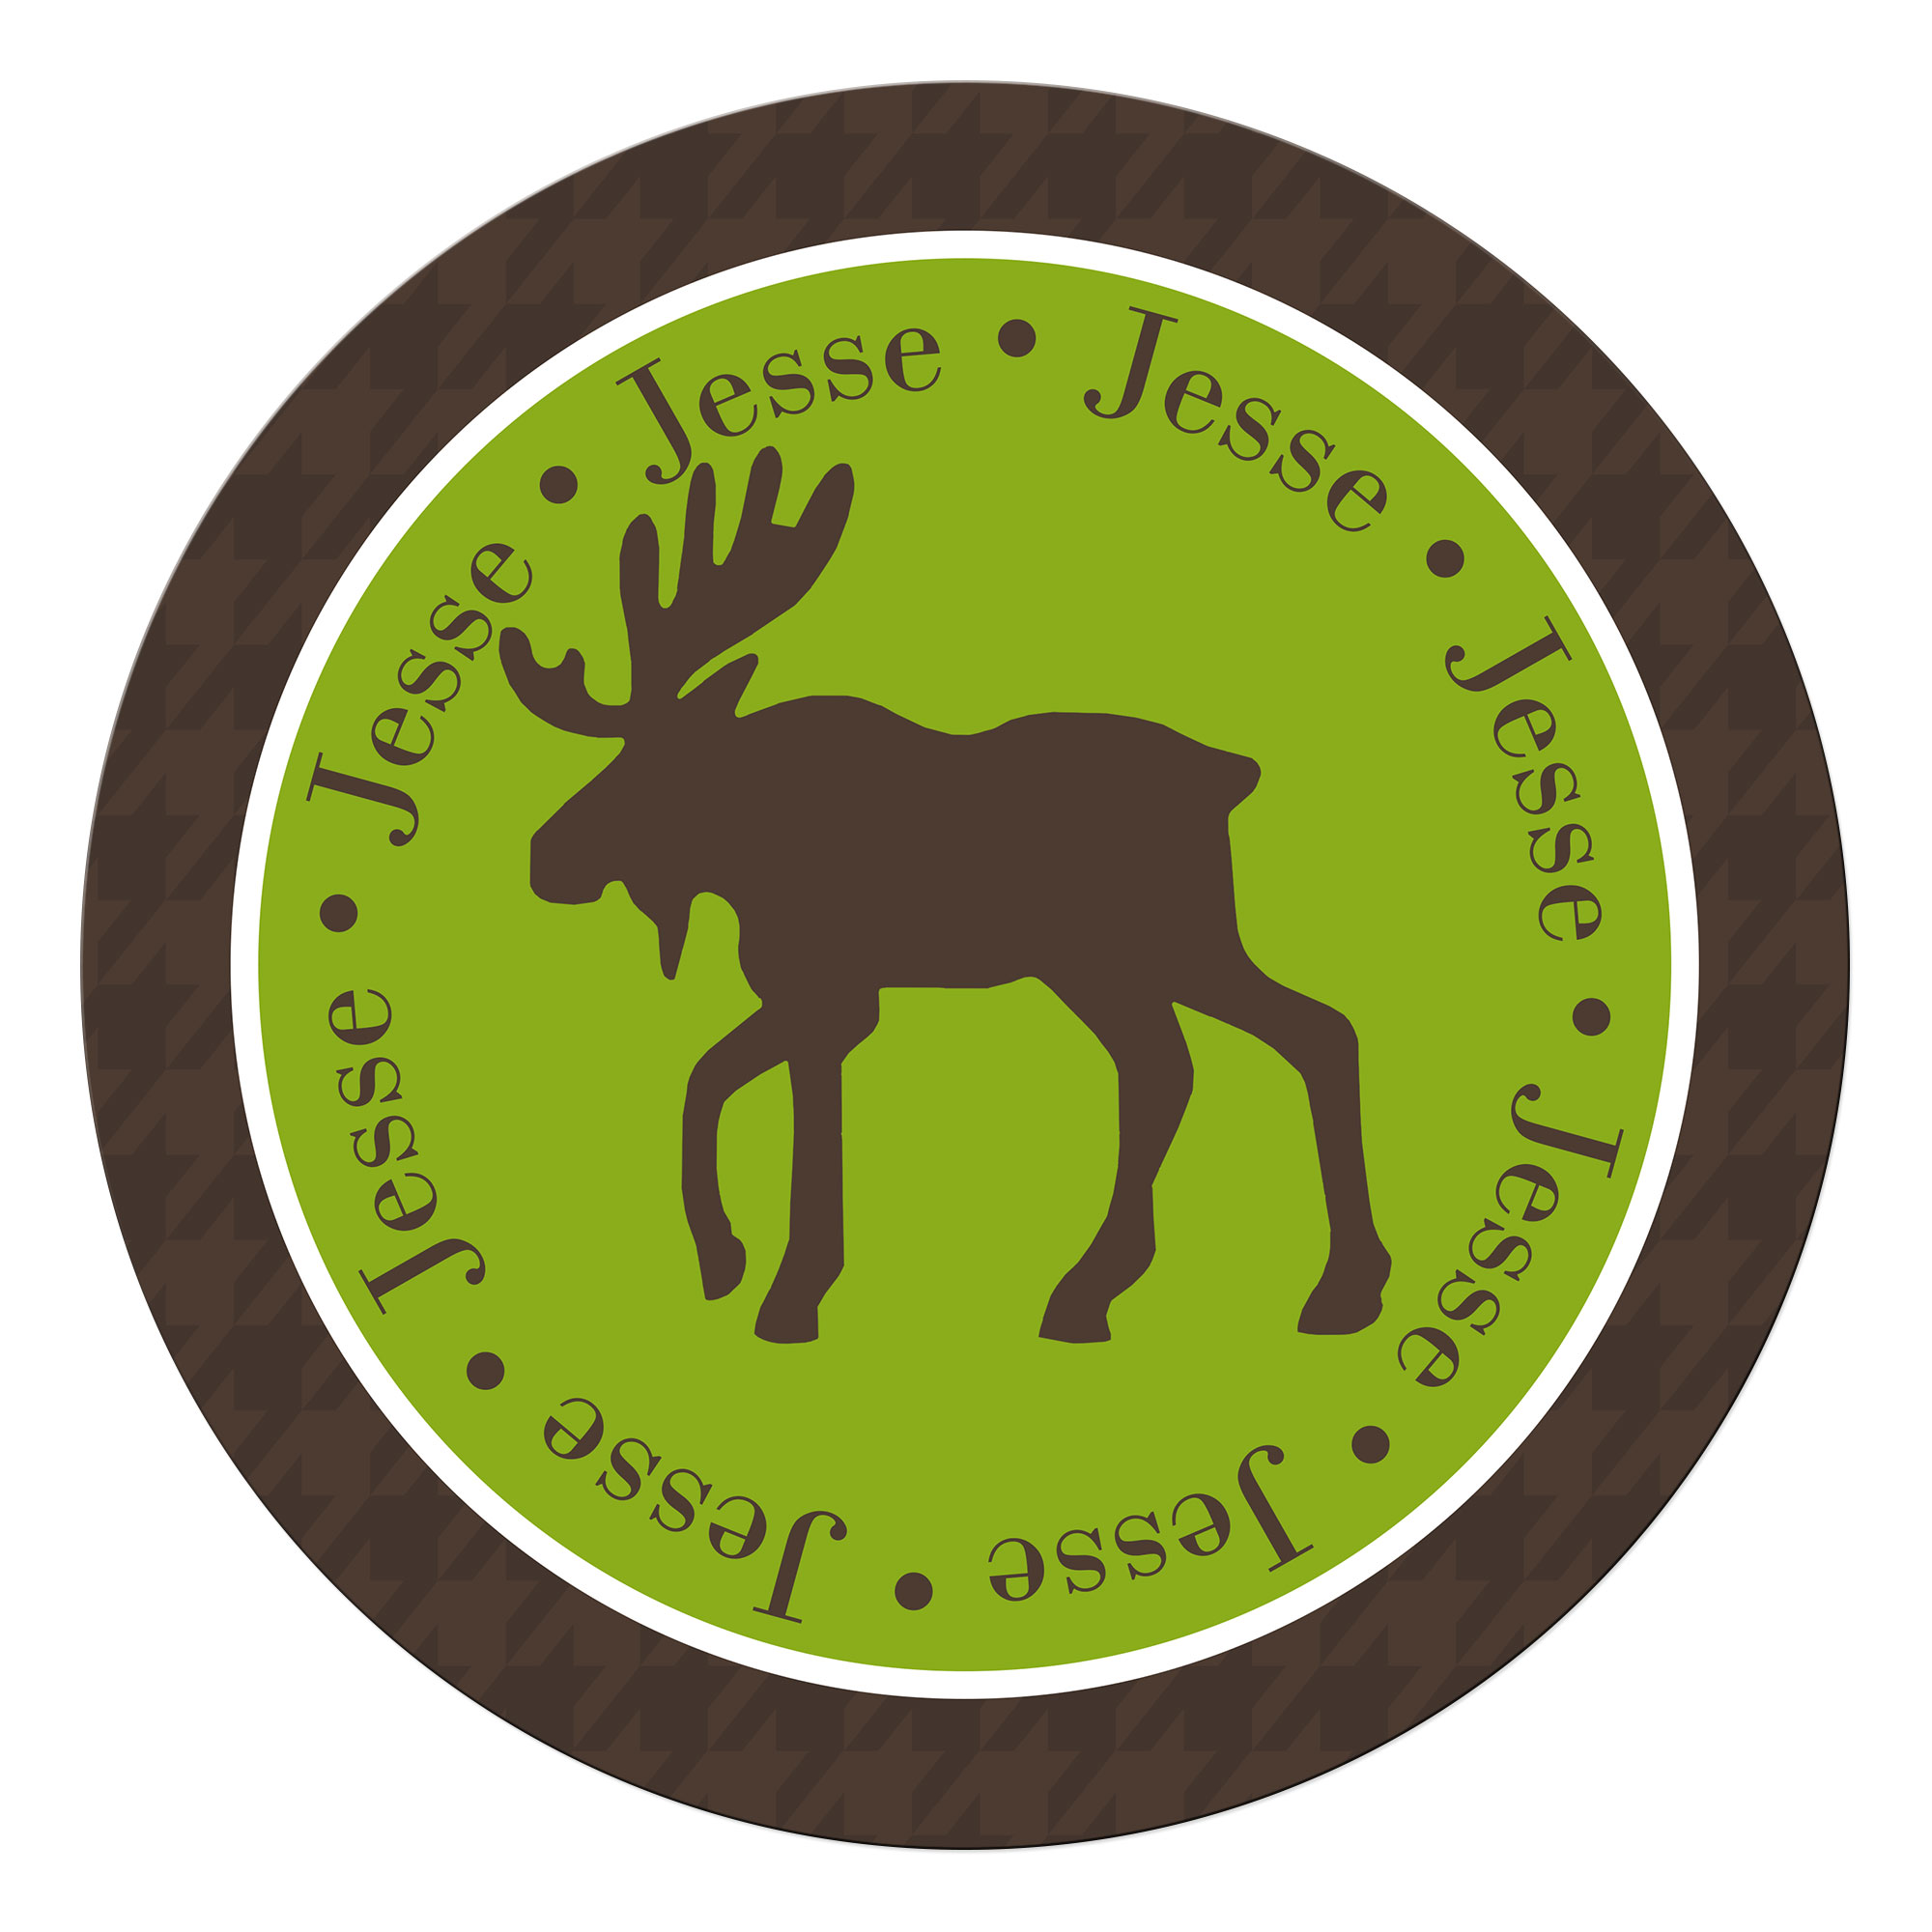 Moose Personalized Melamine Plate  sc 1 st  Lime Rikee Designs & Moose Personalized Melamine Plate | Melamine Plates | Personalized ...